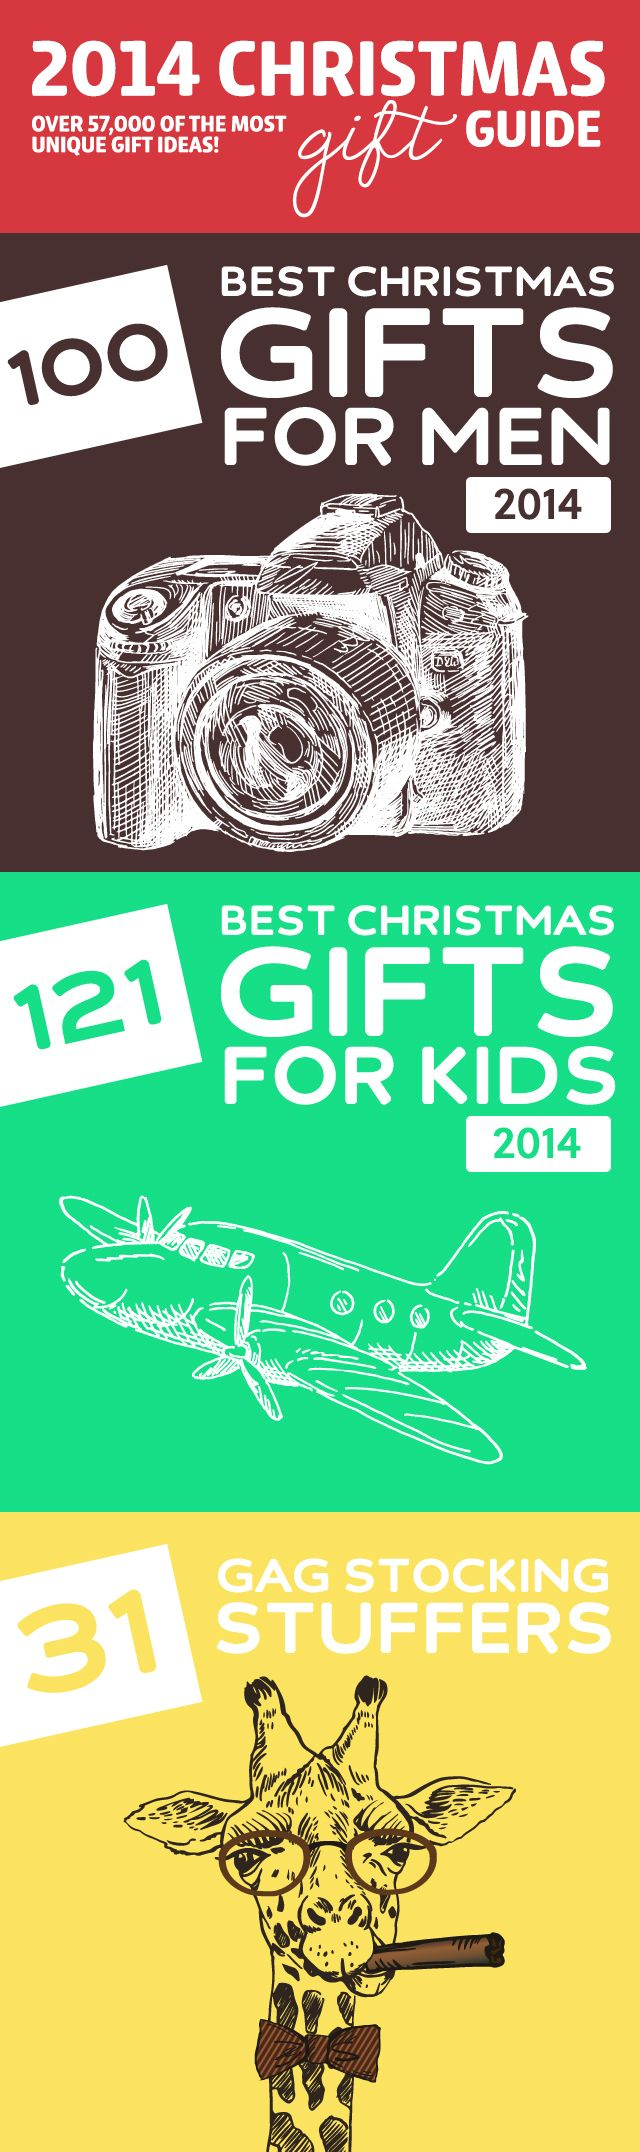 2014 Christmas Gift Guide- over 57,000 of the most unique gift ideas. DON'T do any Christmas shopping before reading this!